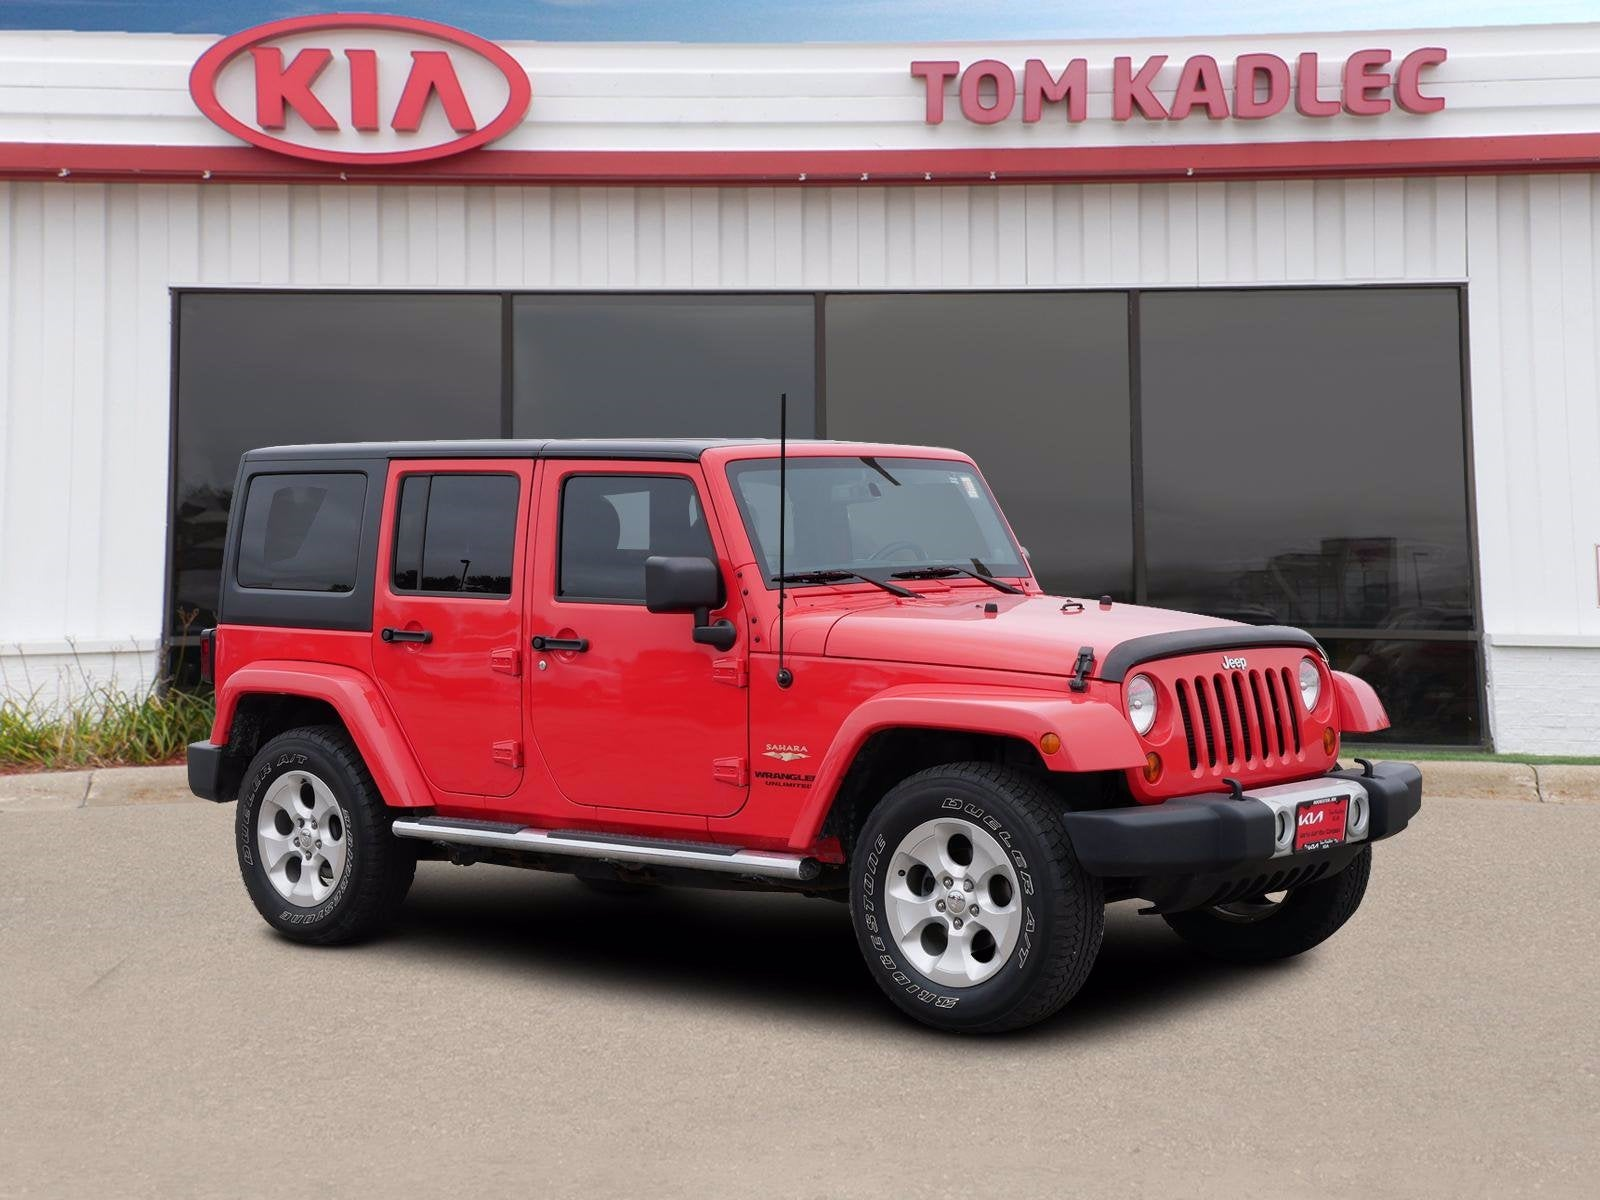 Used 2013 Jeep Wrangler Unlimited Sahara with VIN 1C4BJWEG1DL622707 for sale in Rochester, Minnesota